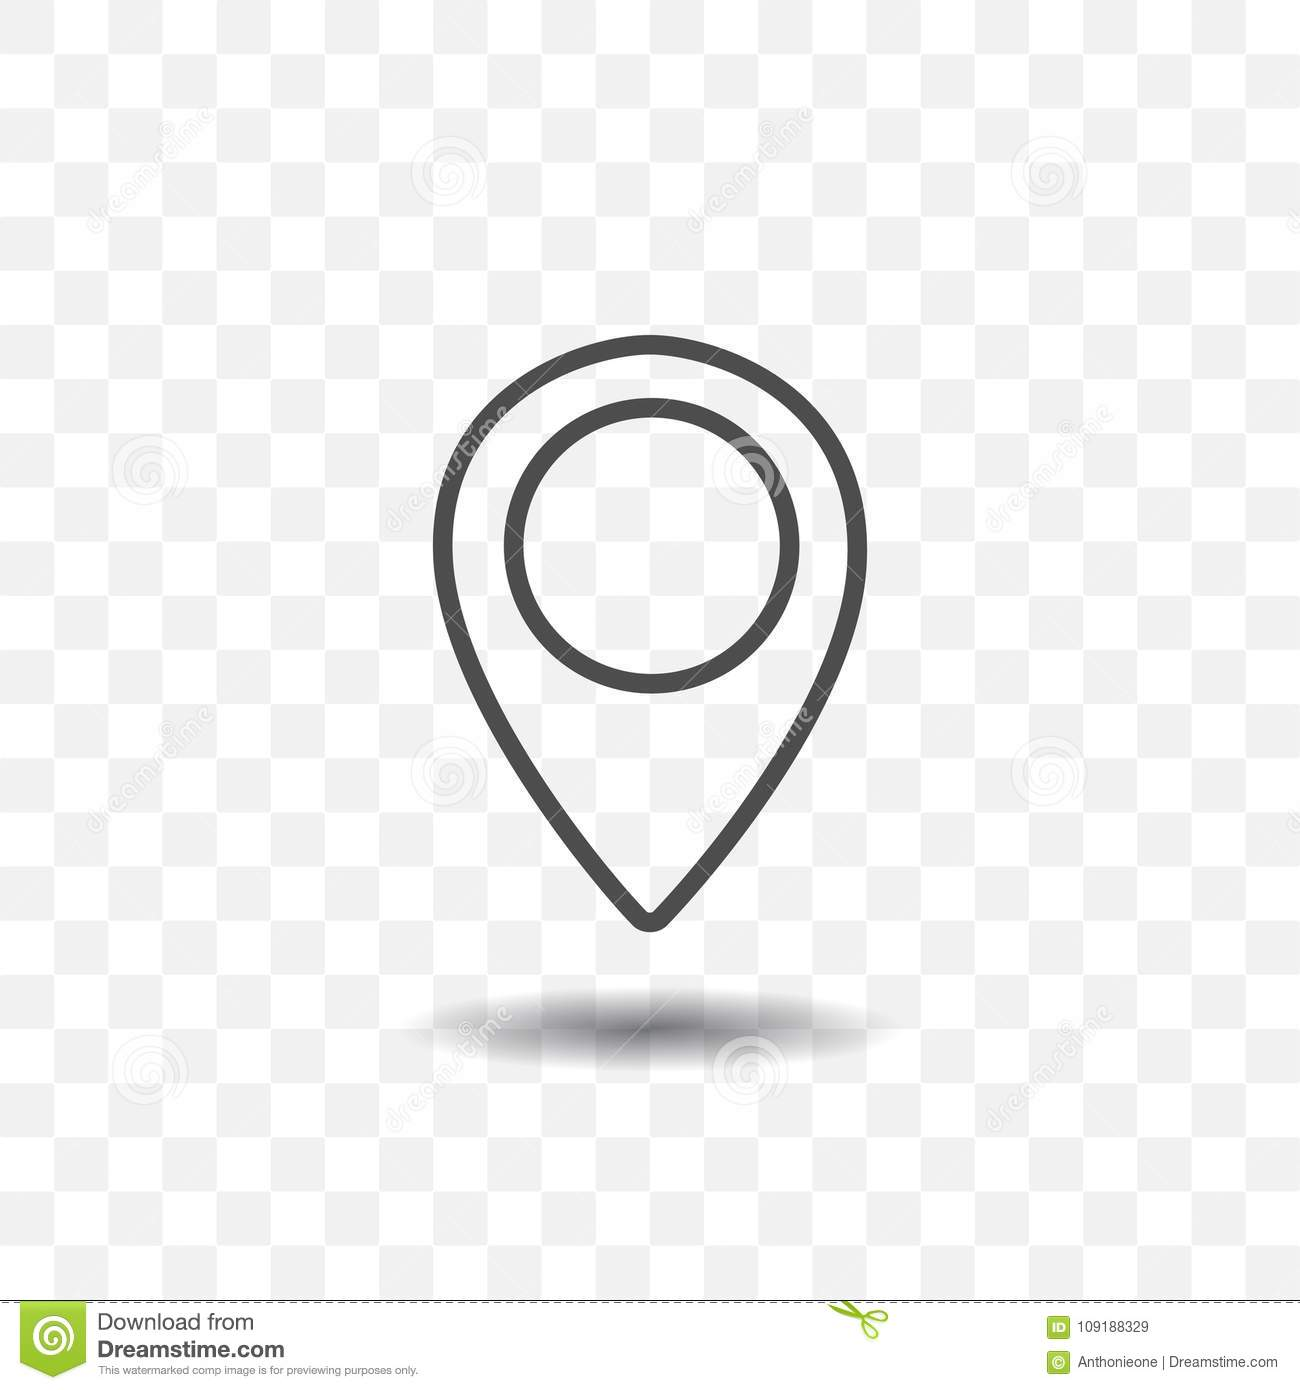 Outlined Map Location Pointer Icon On Transparent